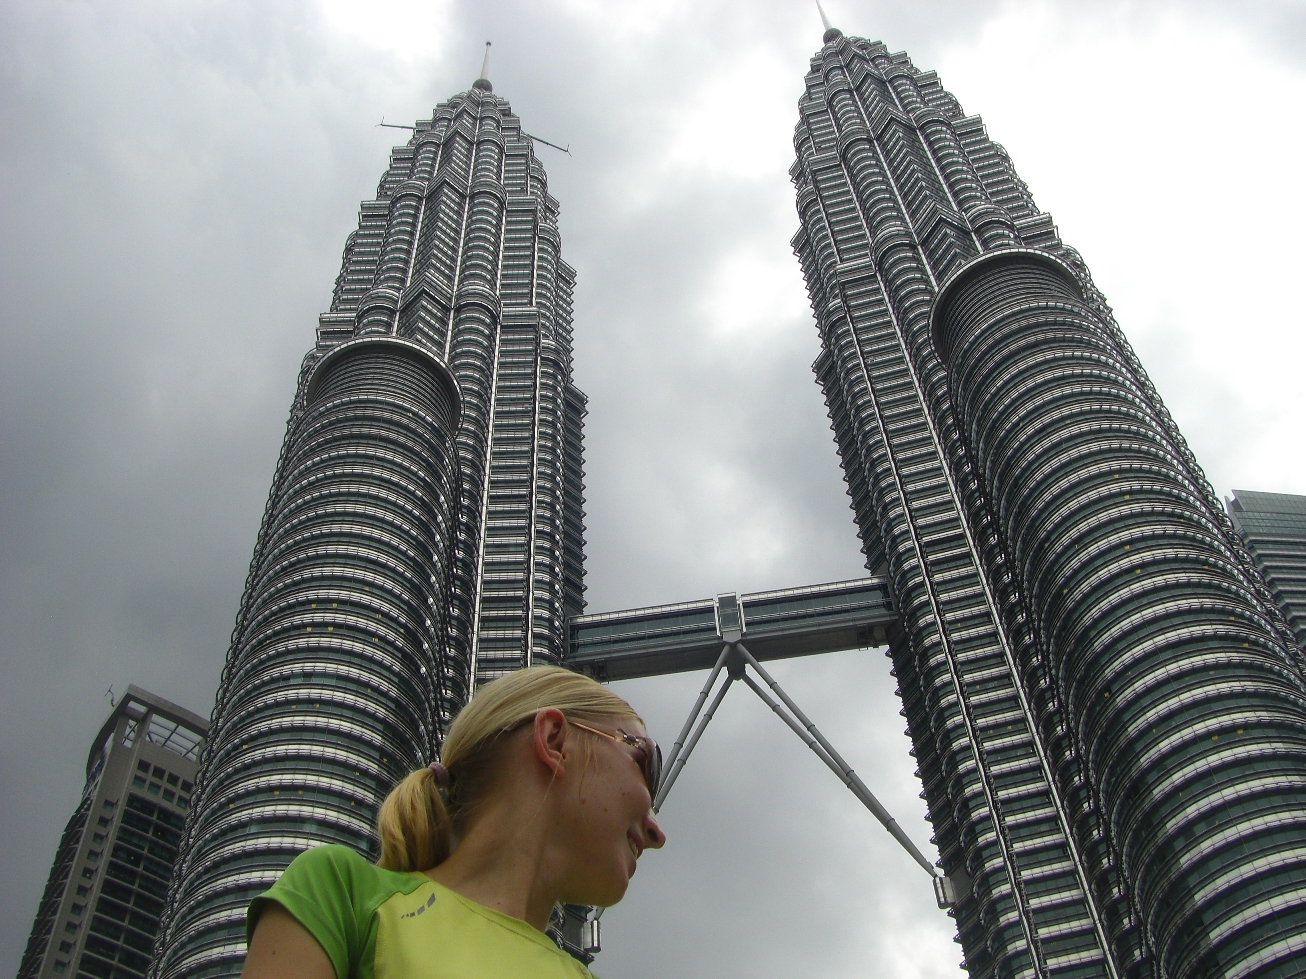 Petronas Towers 4